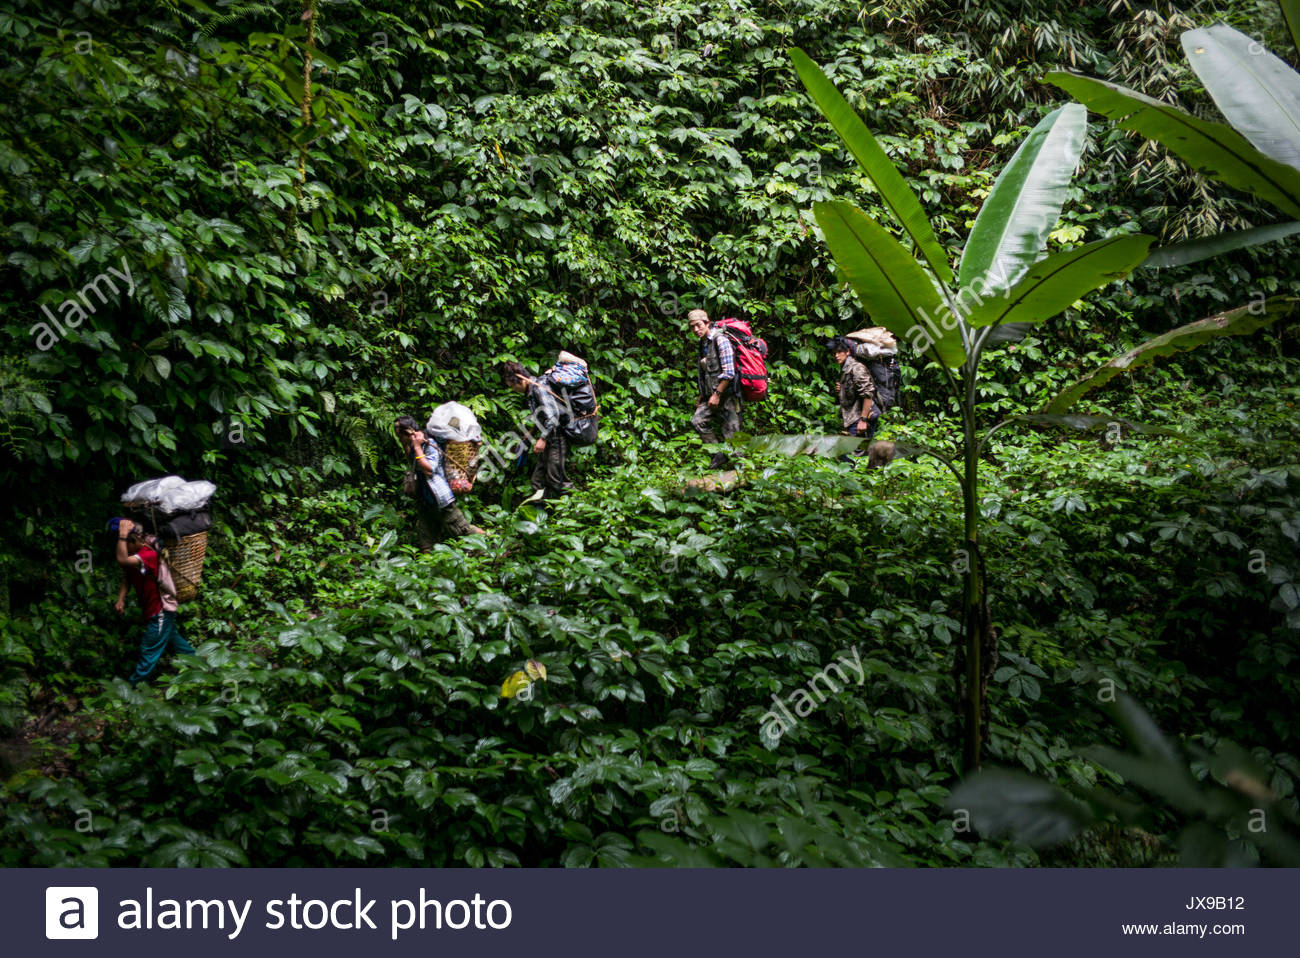 Mountain climbers and porters ferry loads of gear through jungle vegetation. - Stock Image